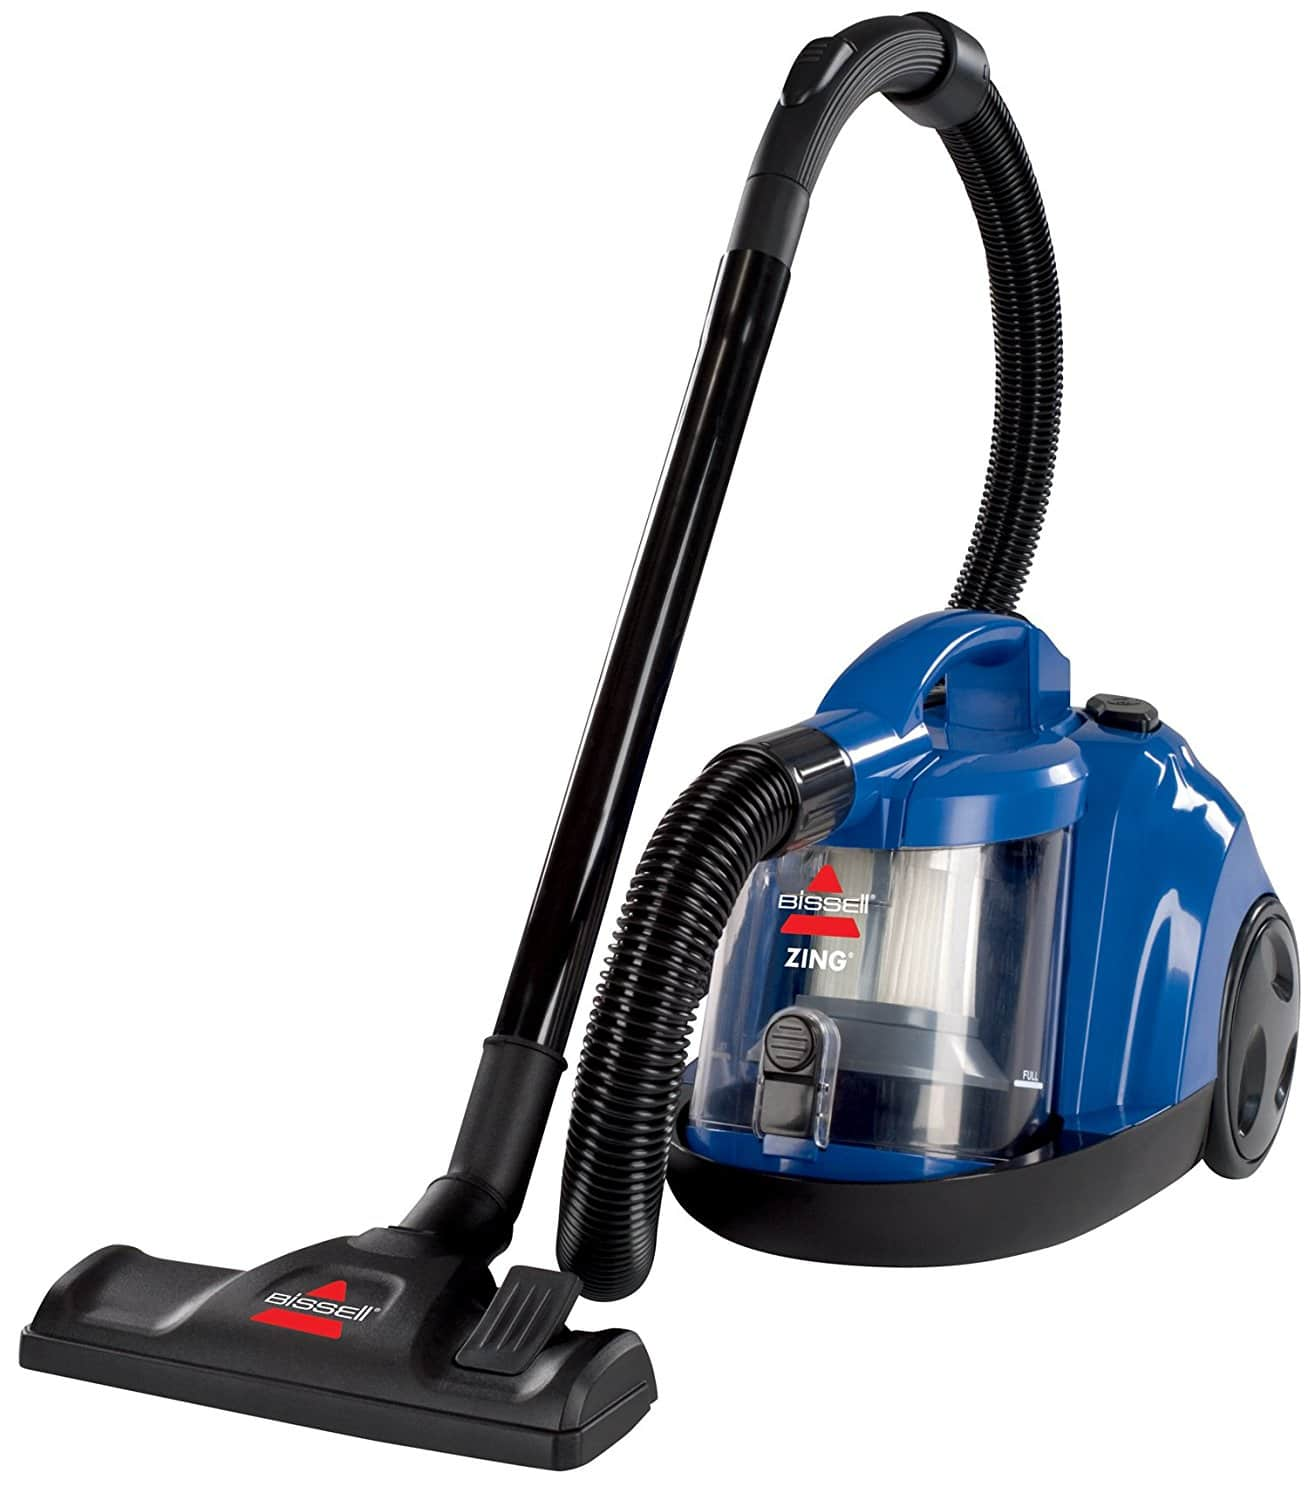 best canister vacuum: Simply the Best Canister Vacuum Cleaner out there